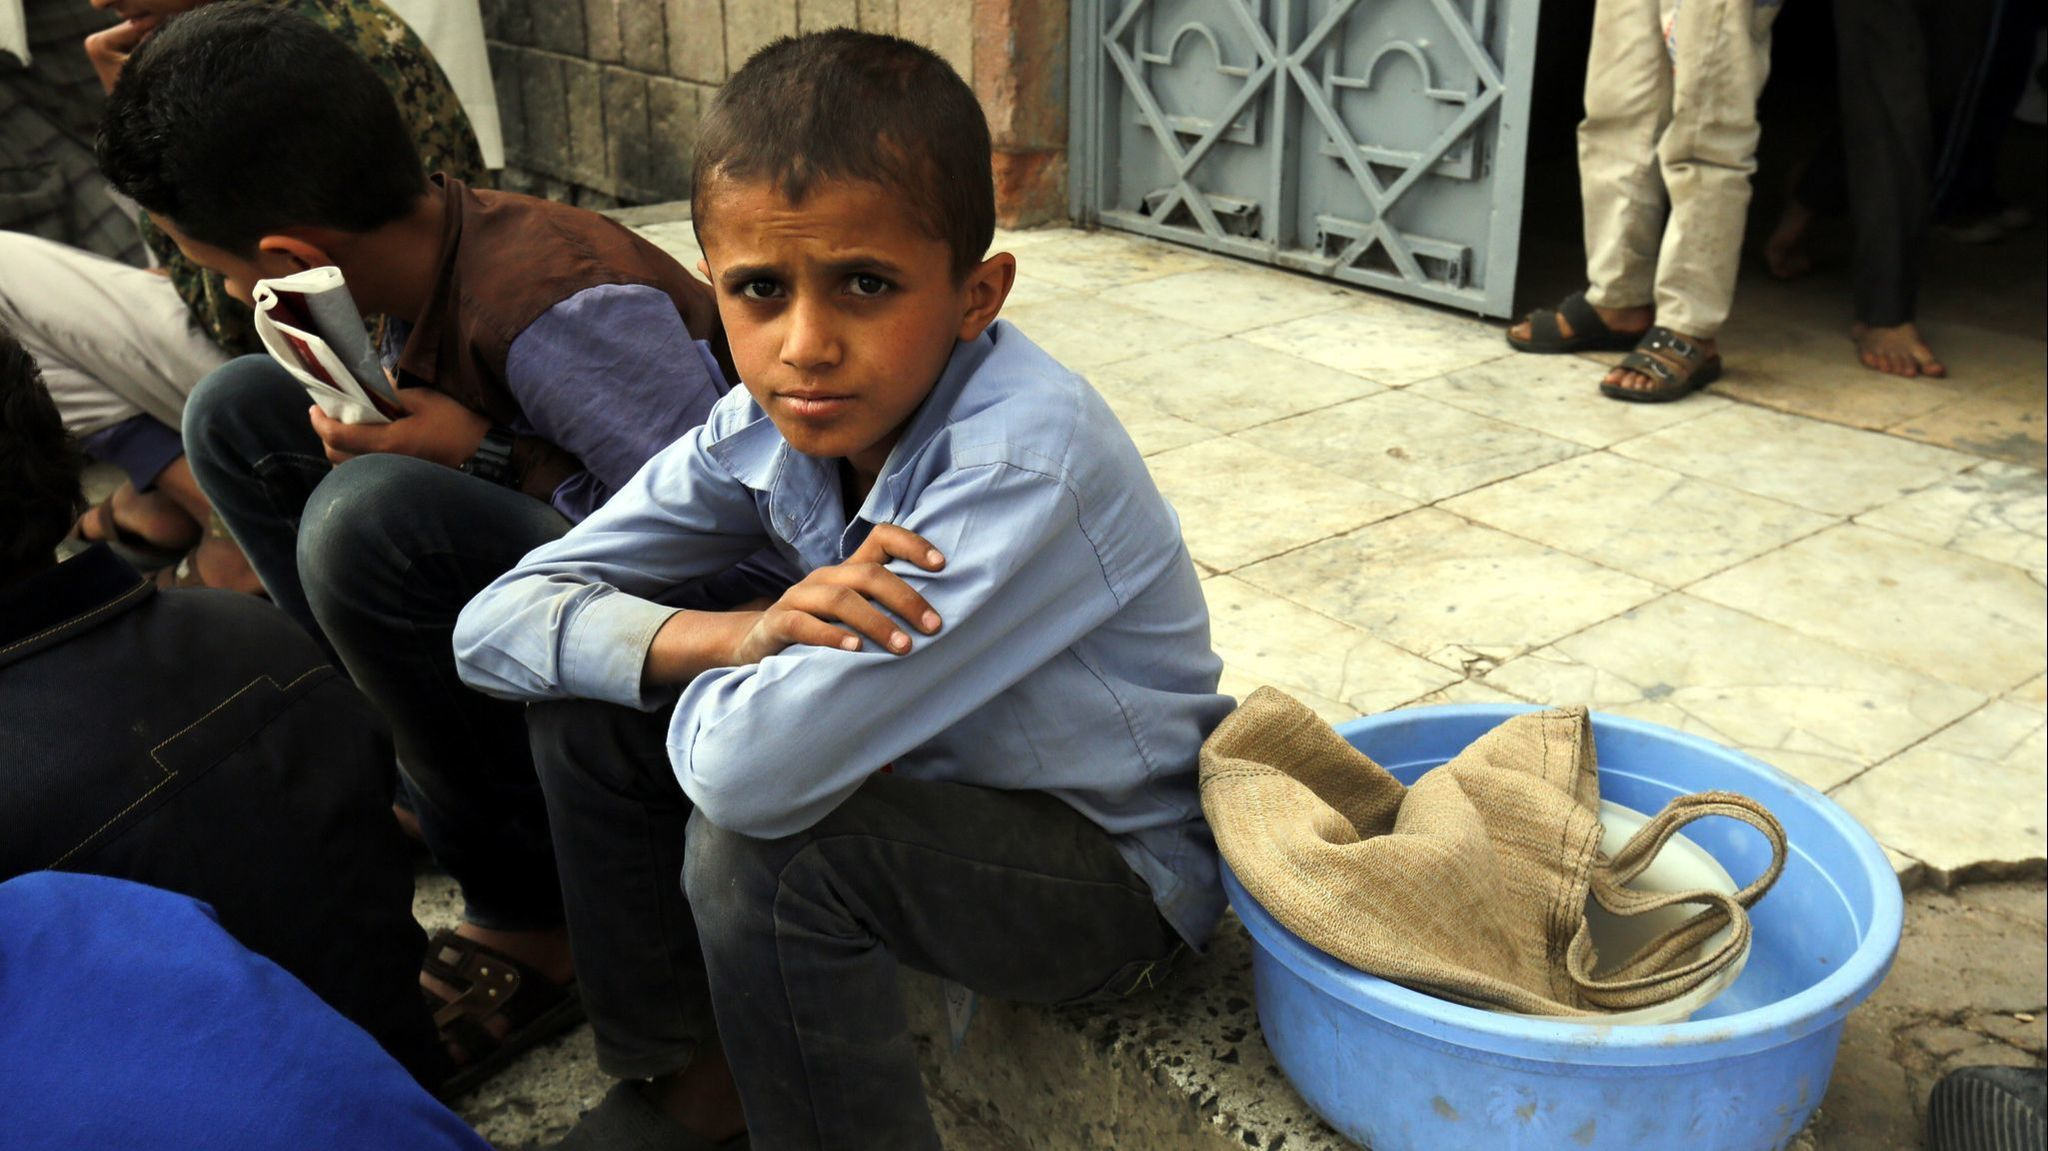 Yemen conflict leads to a humanitarian crisis